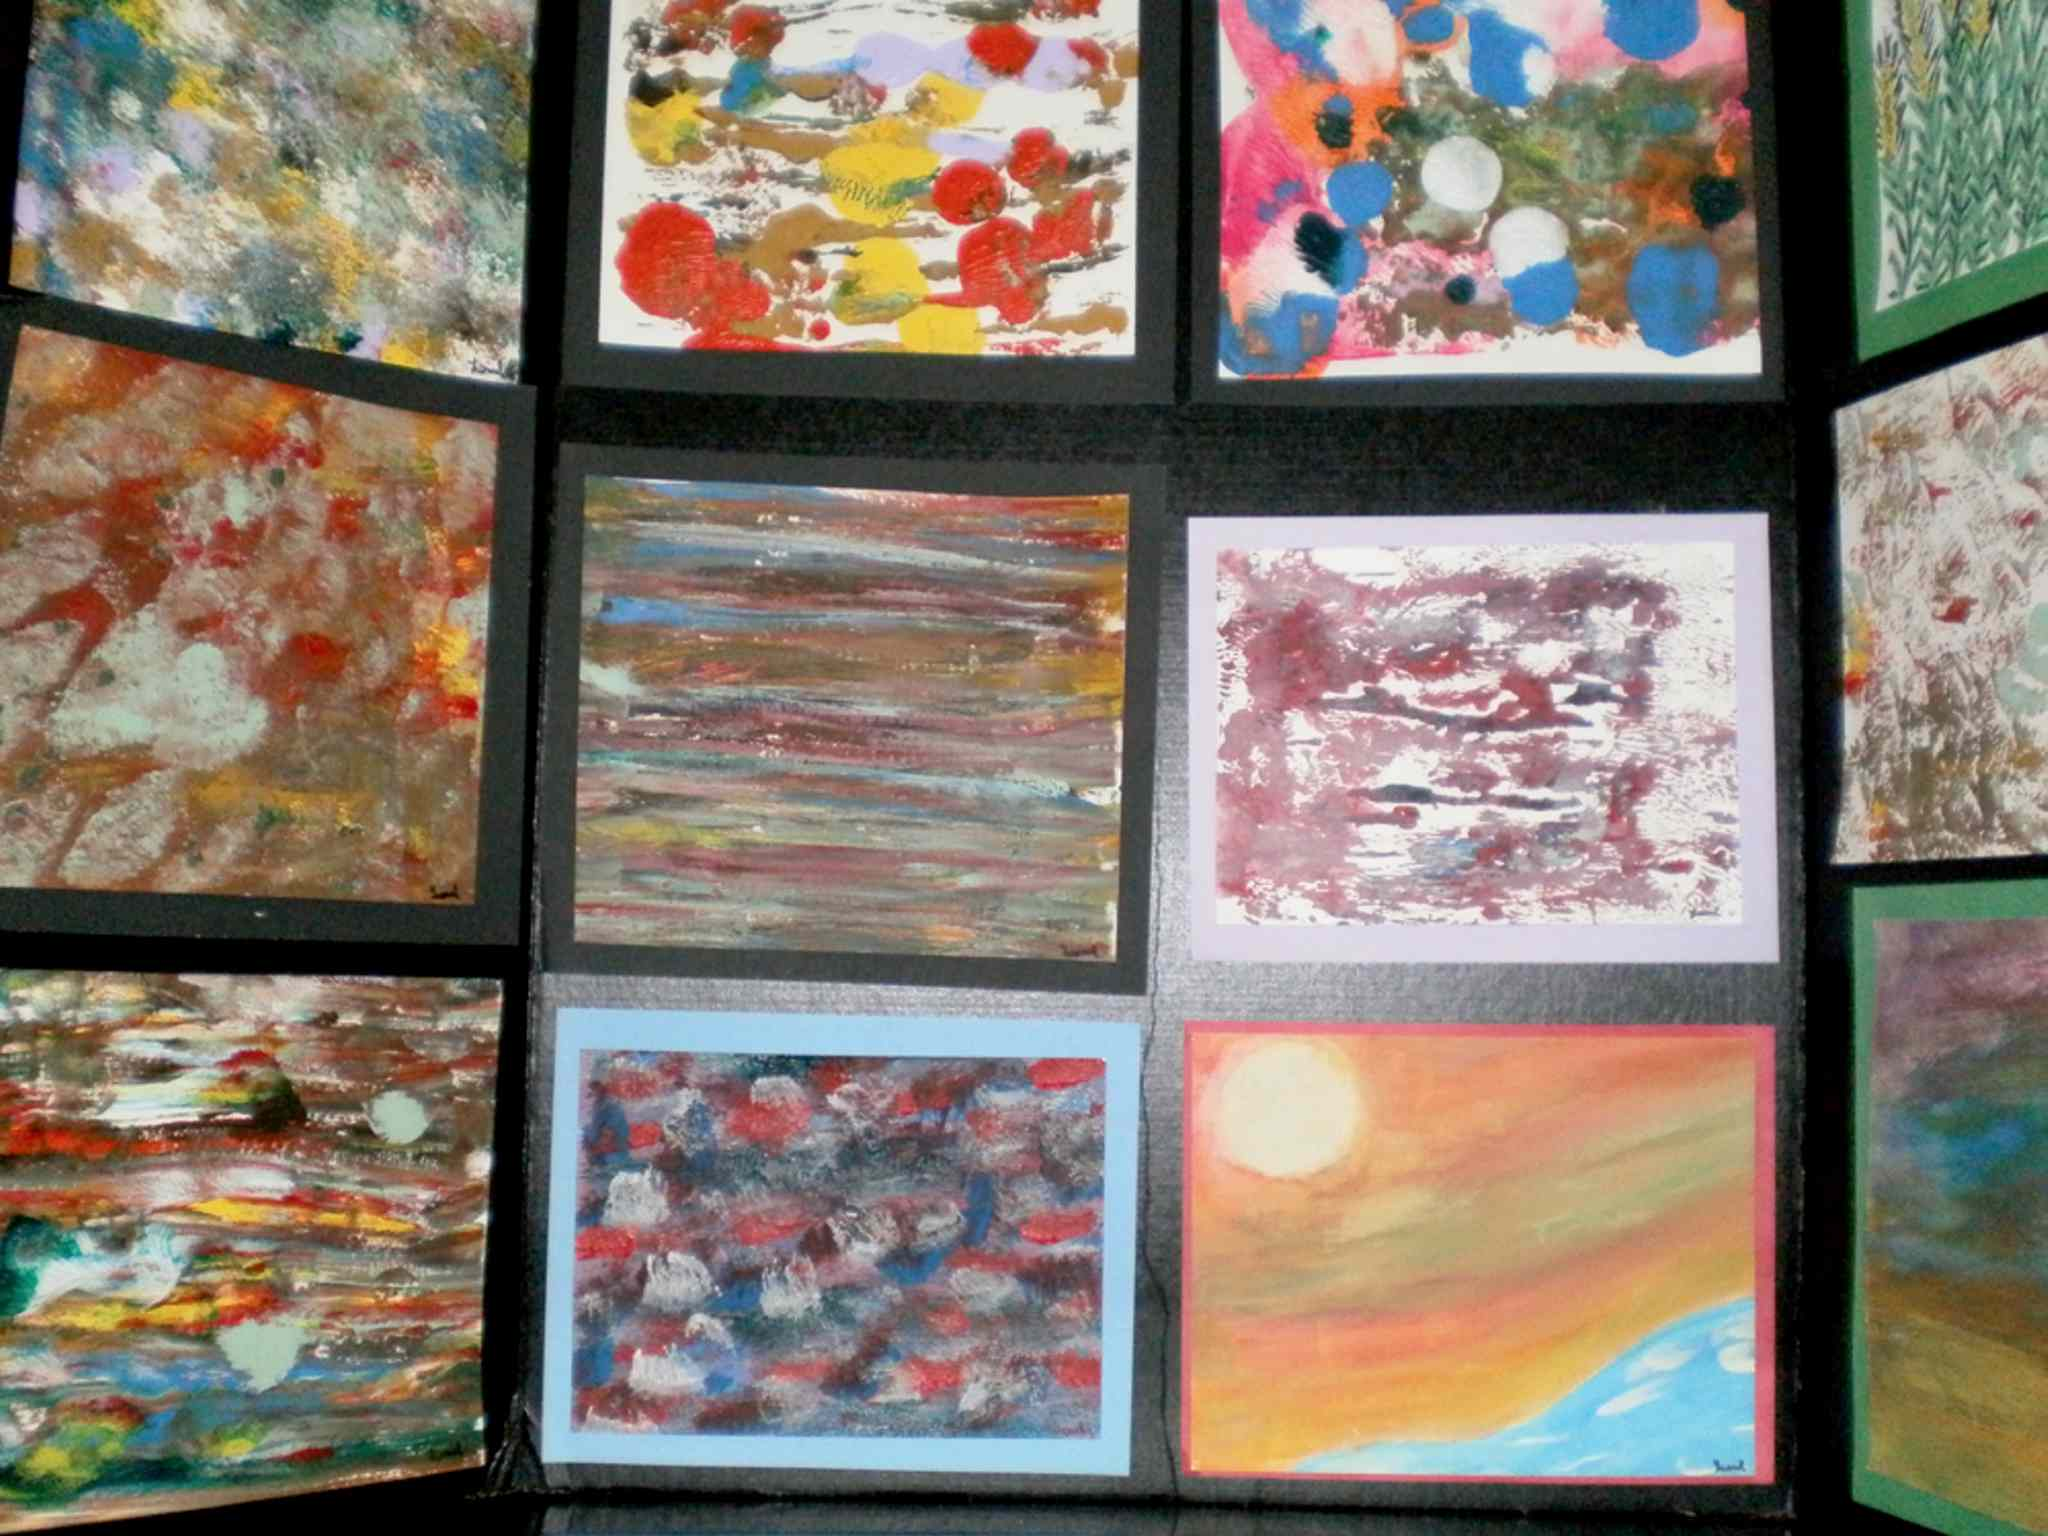 Some of the artwork on display at the Osborne Library, created by Alzheimer's patients who are residents of Actionmarguerite.